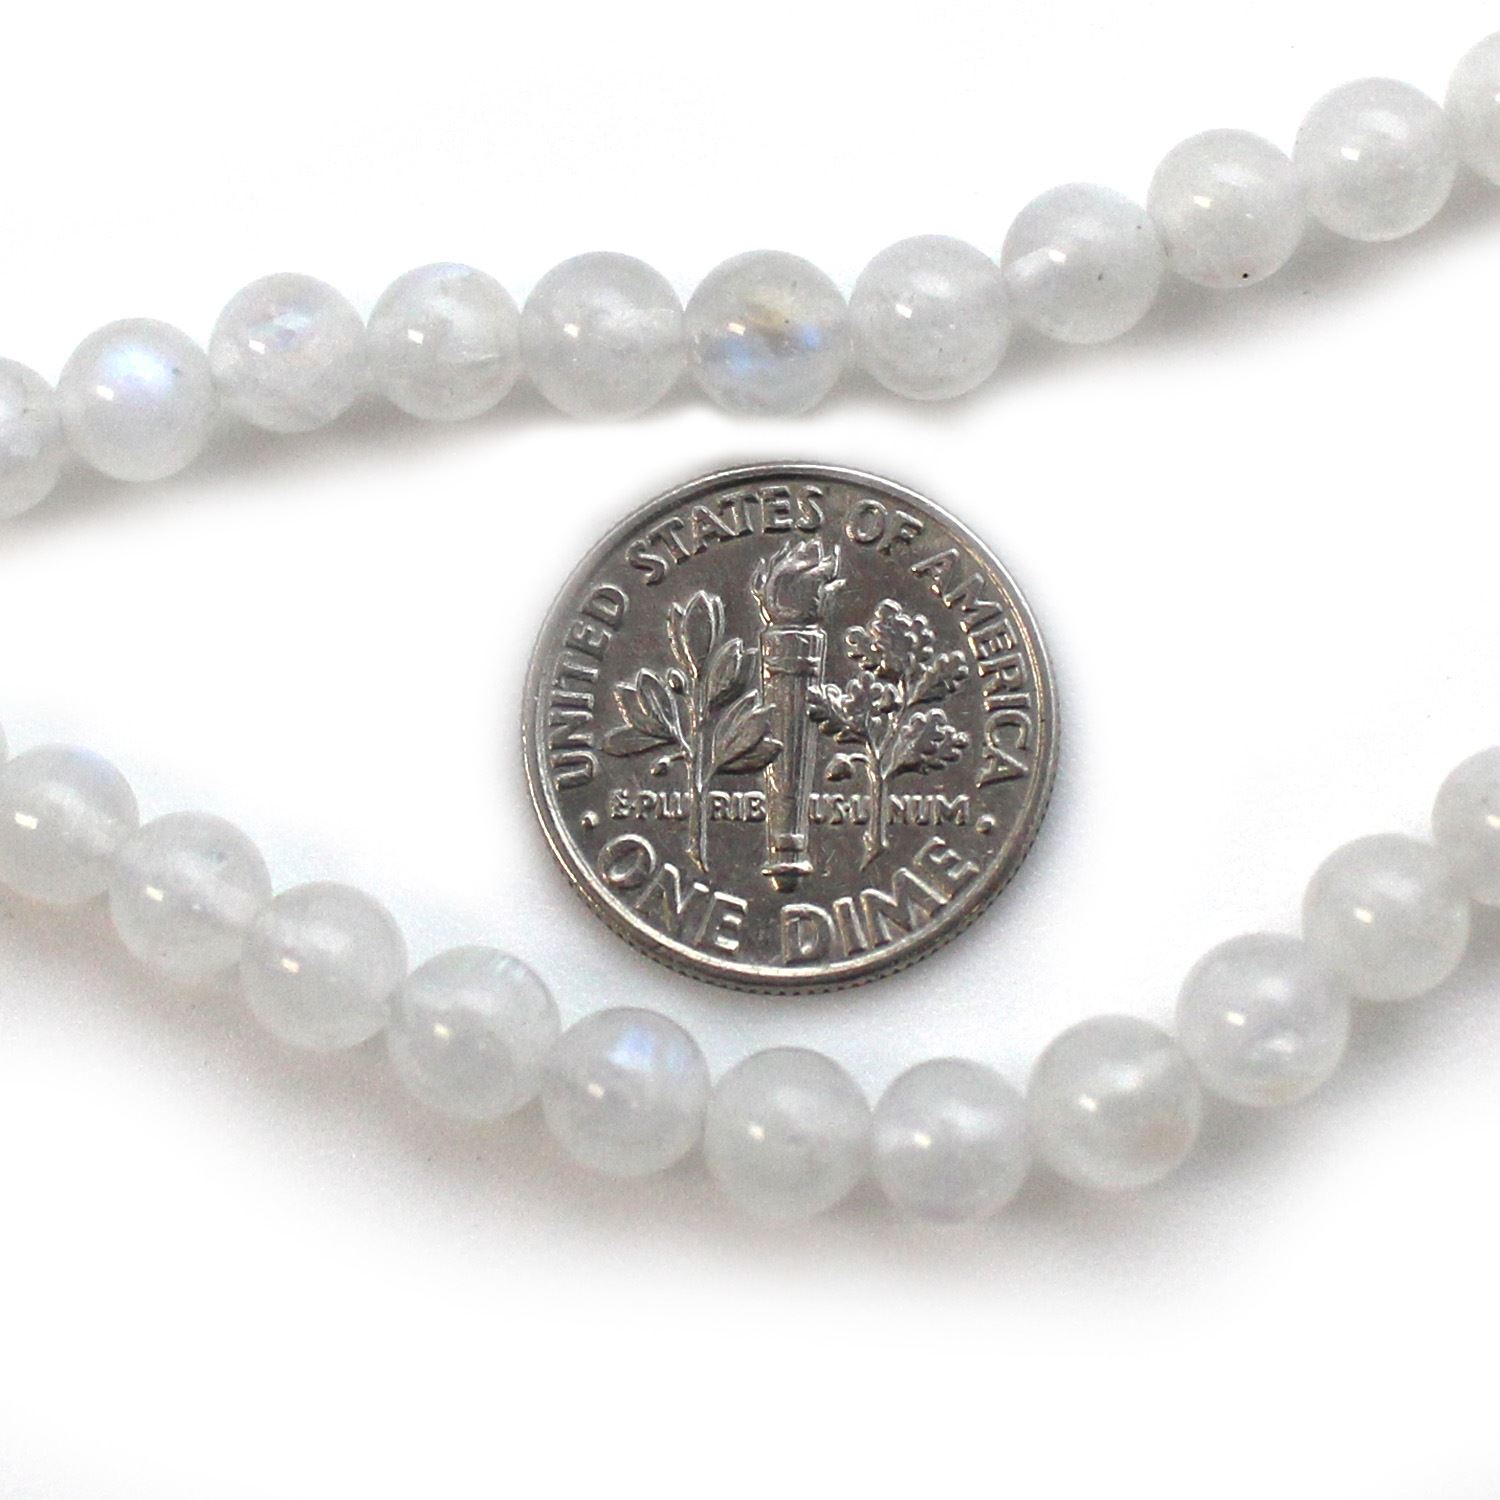 Smooth Round Moonstone Beads - 5.5mm (Sold Per Strand)